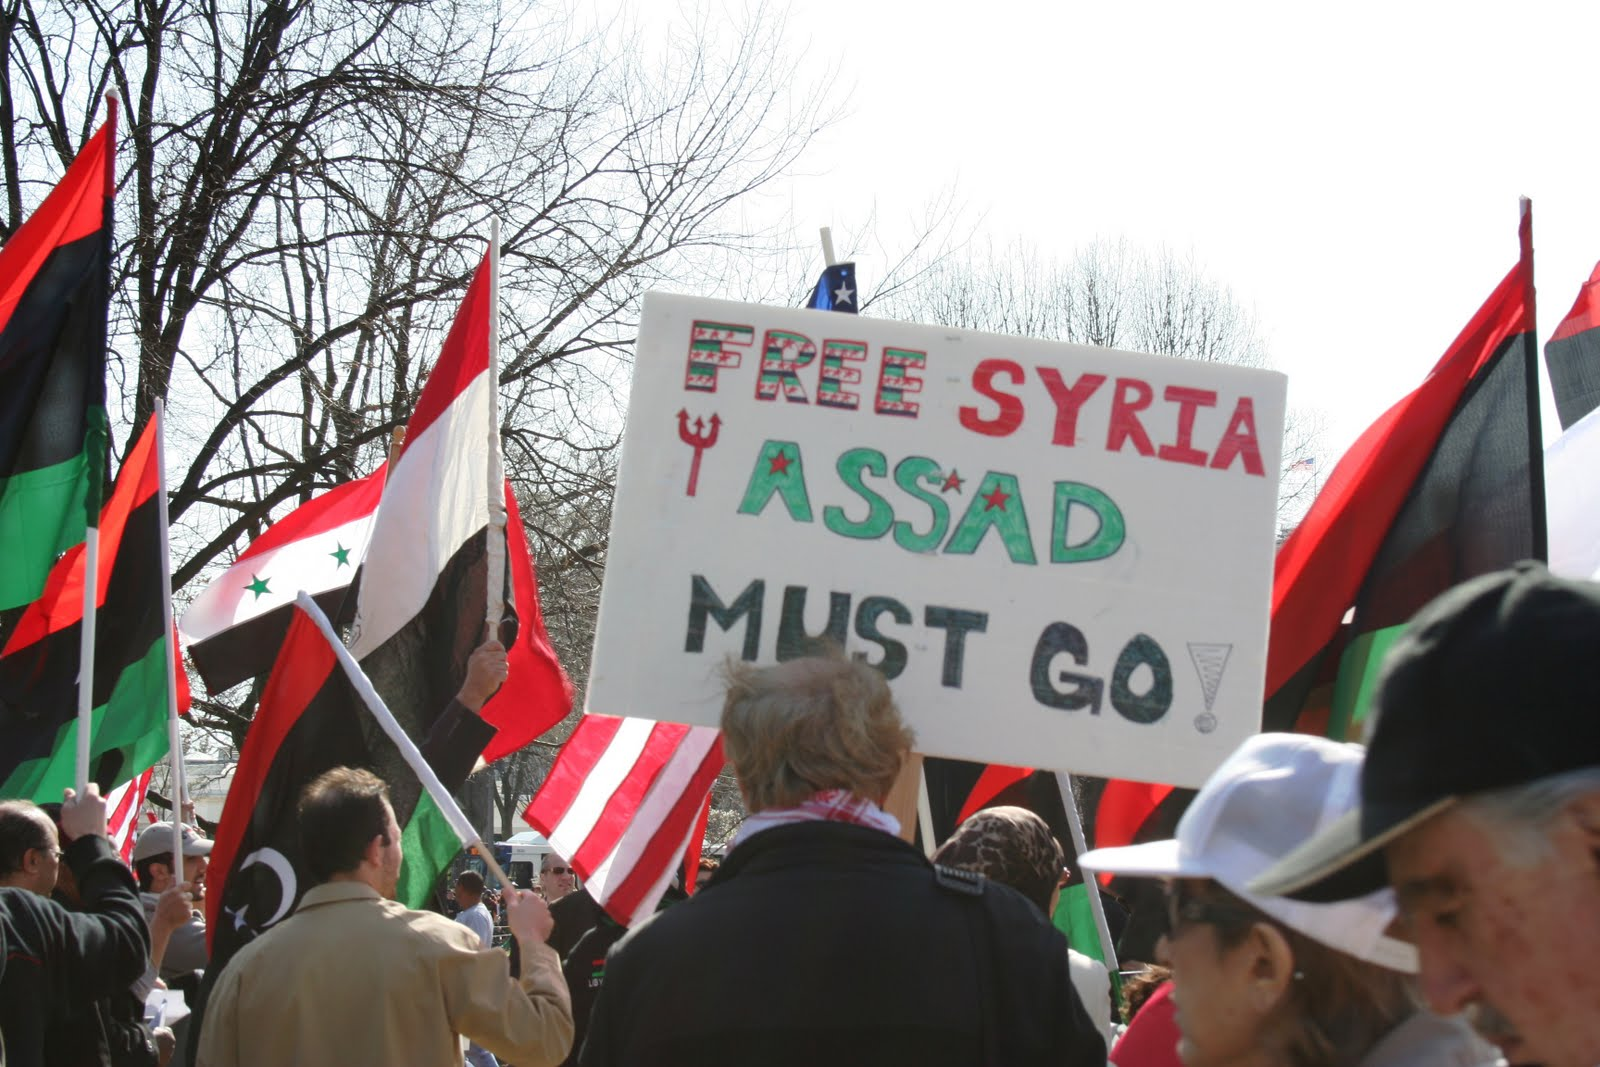 arab spring in syria This guide lists online and print sources for what has become known as the arab spring, the popular revolutionary wave in the middle east and north africa  syria.